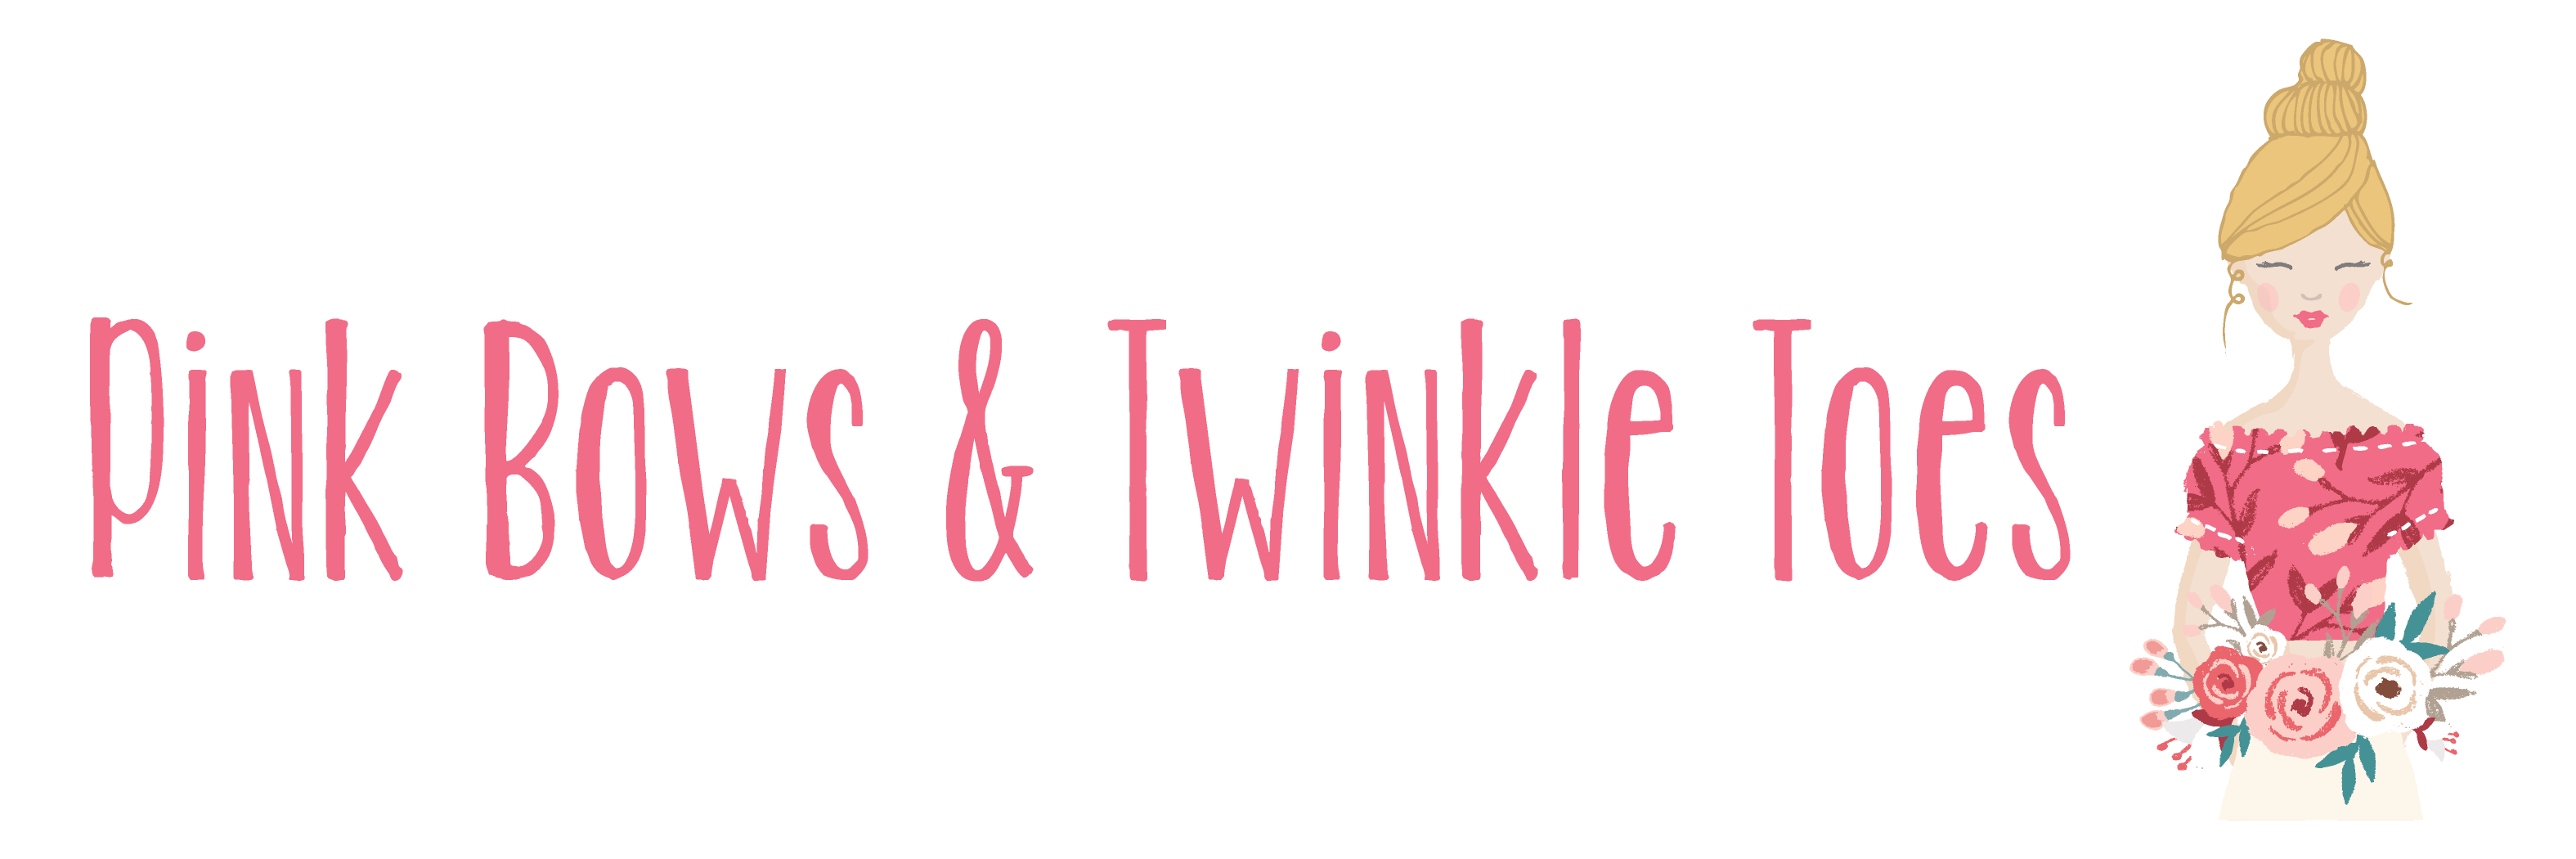 Pink Bows & Twinkle Toes